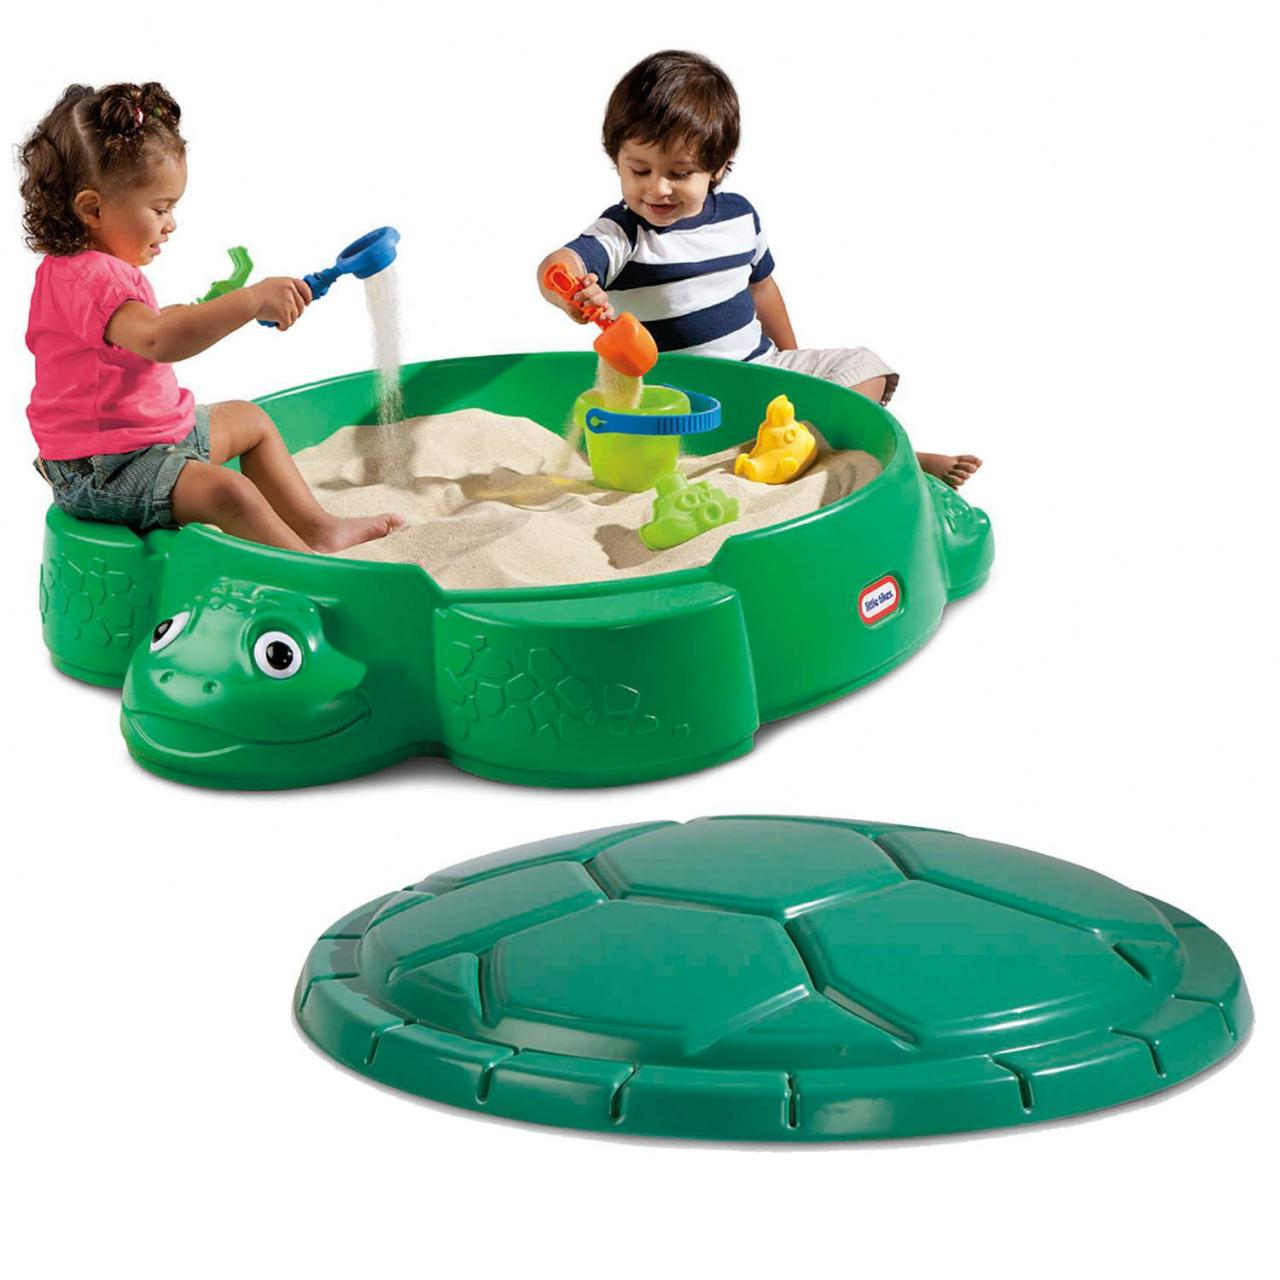 Sand and Water Play Turtle Sandbox Manufactures